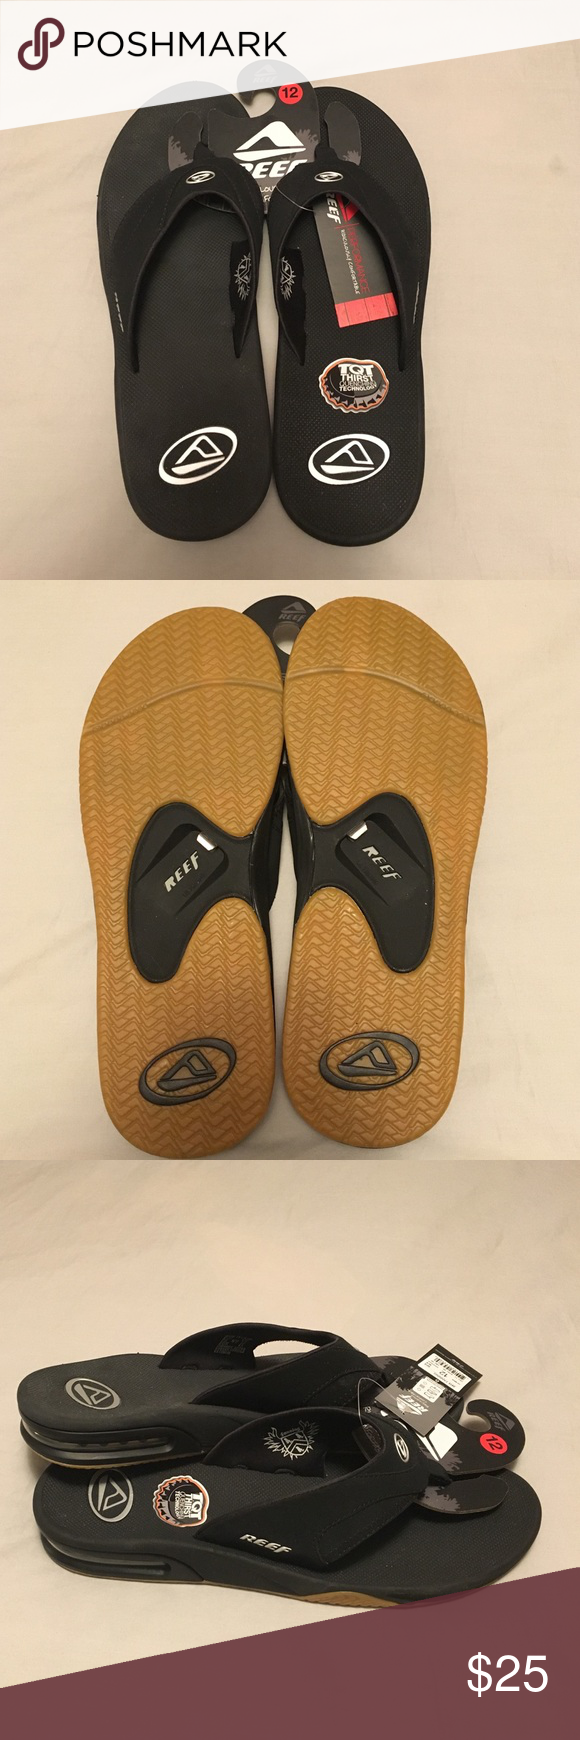 a3a965b7a36c NWT Reef Bottle Opener Sandals Men s size 12 Reef black silver Fanning flip  flops with bottle opener on bottom. Brand new with tags